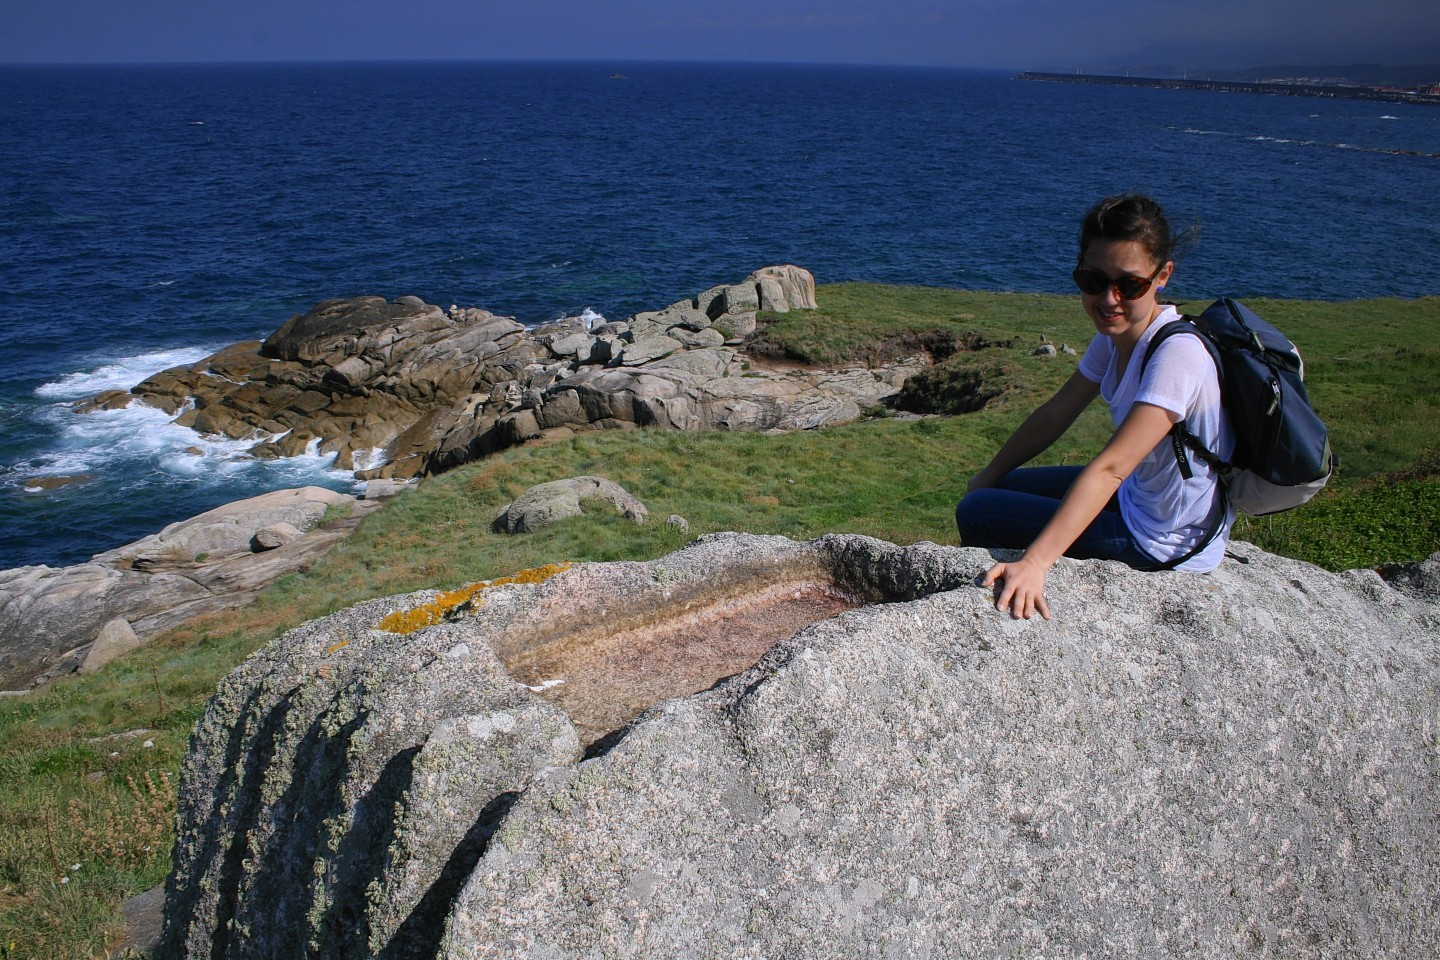 Dr Losquino on Spain's northern coast